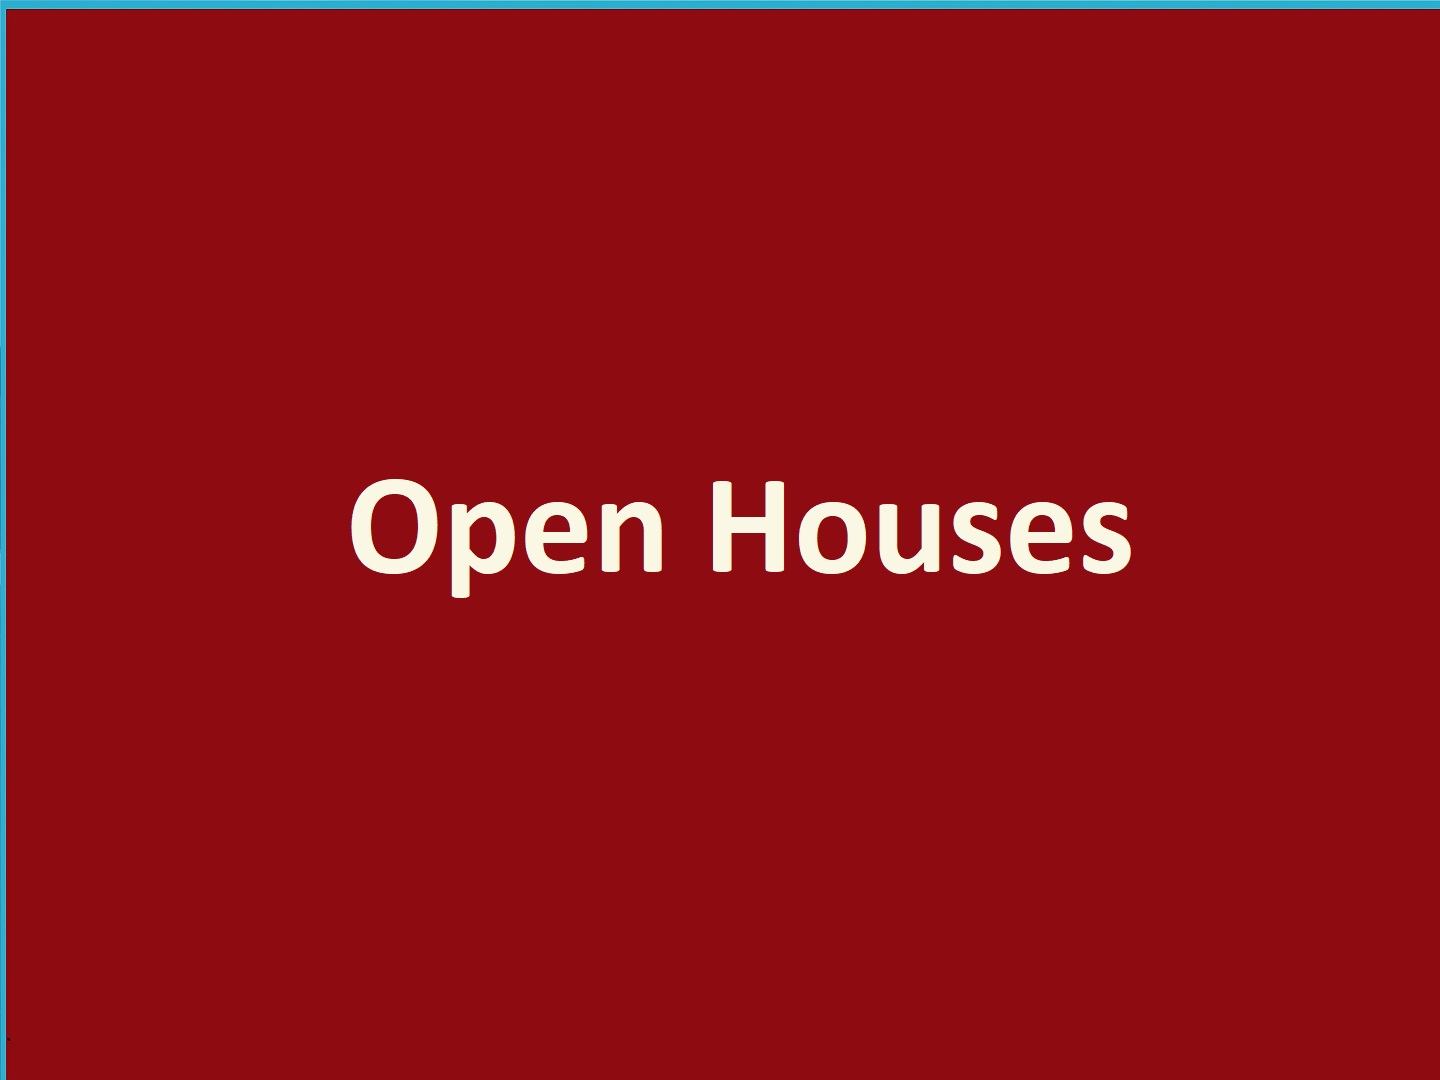 open houses text